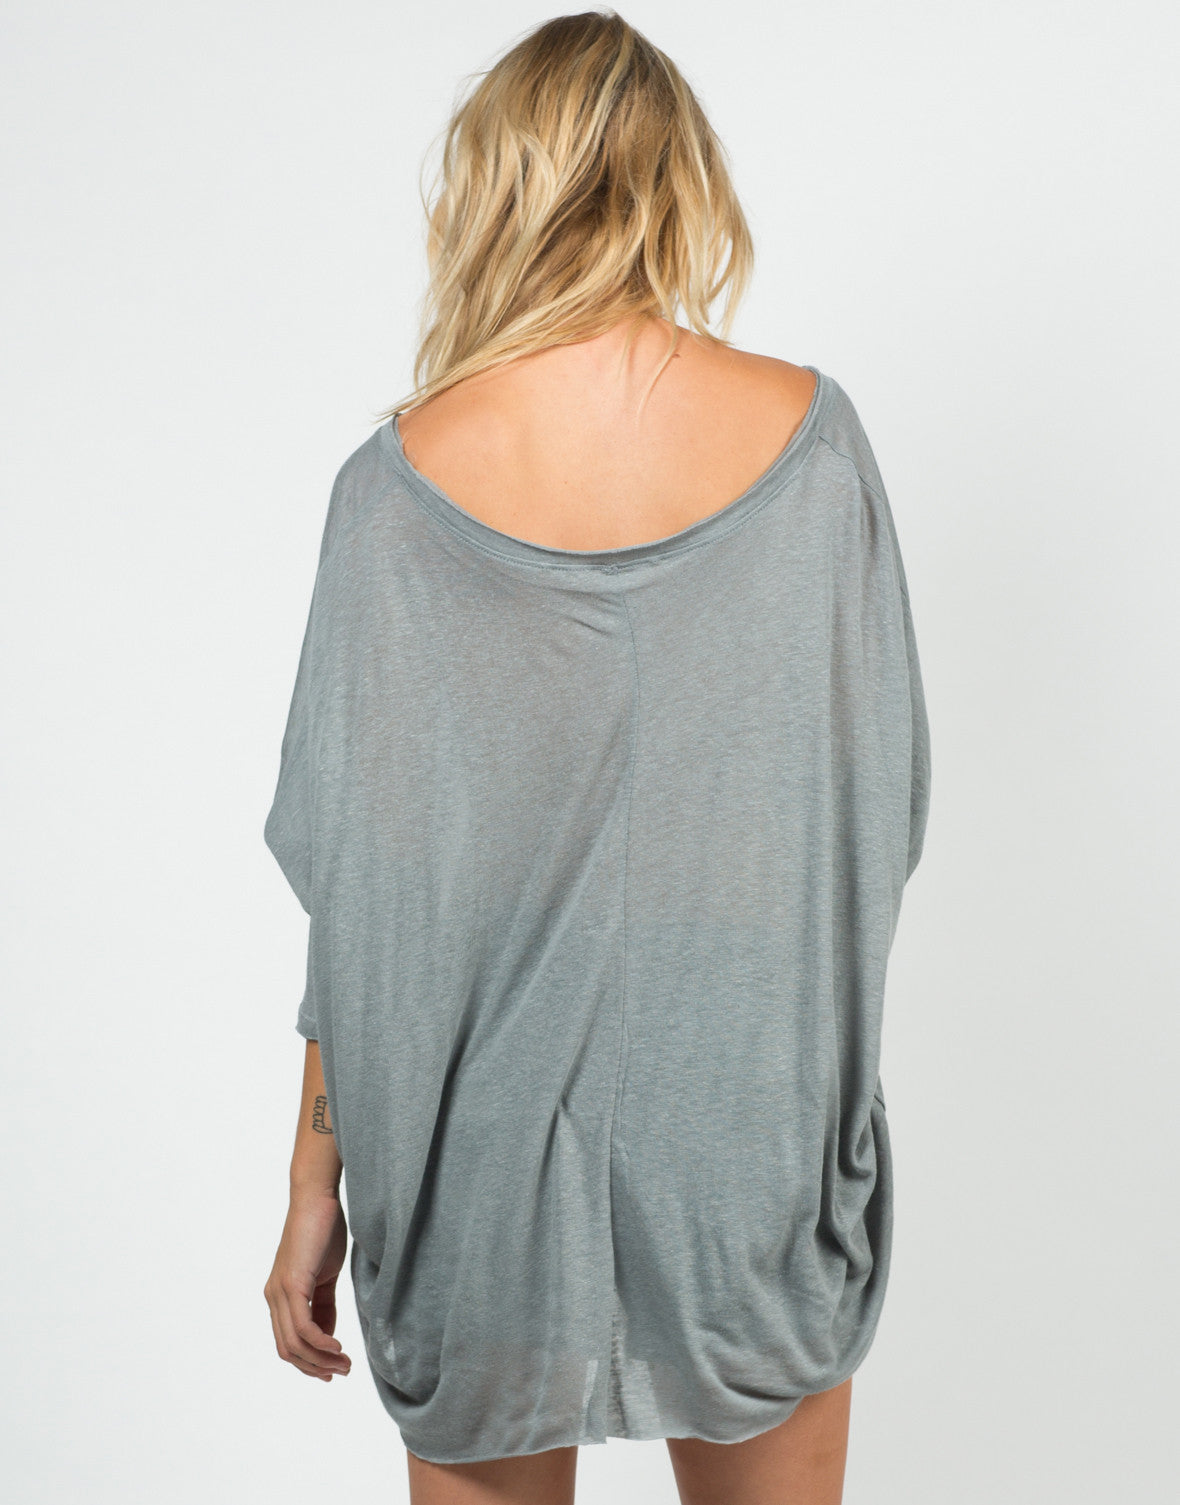 Back View of Sheer Loose Dolman Top